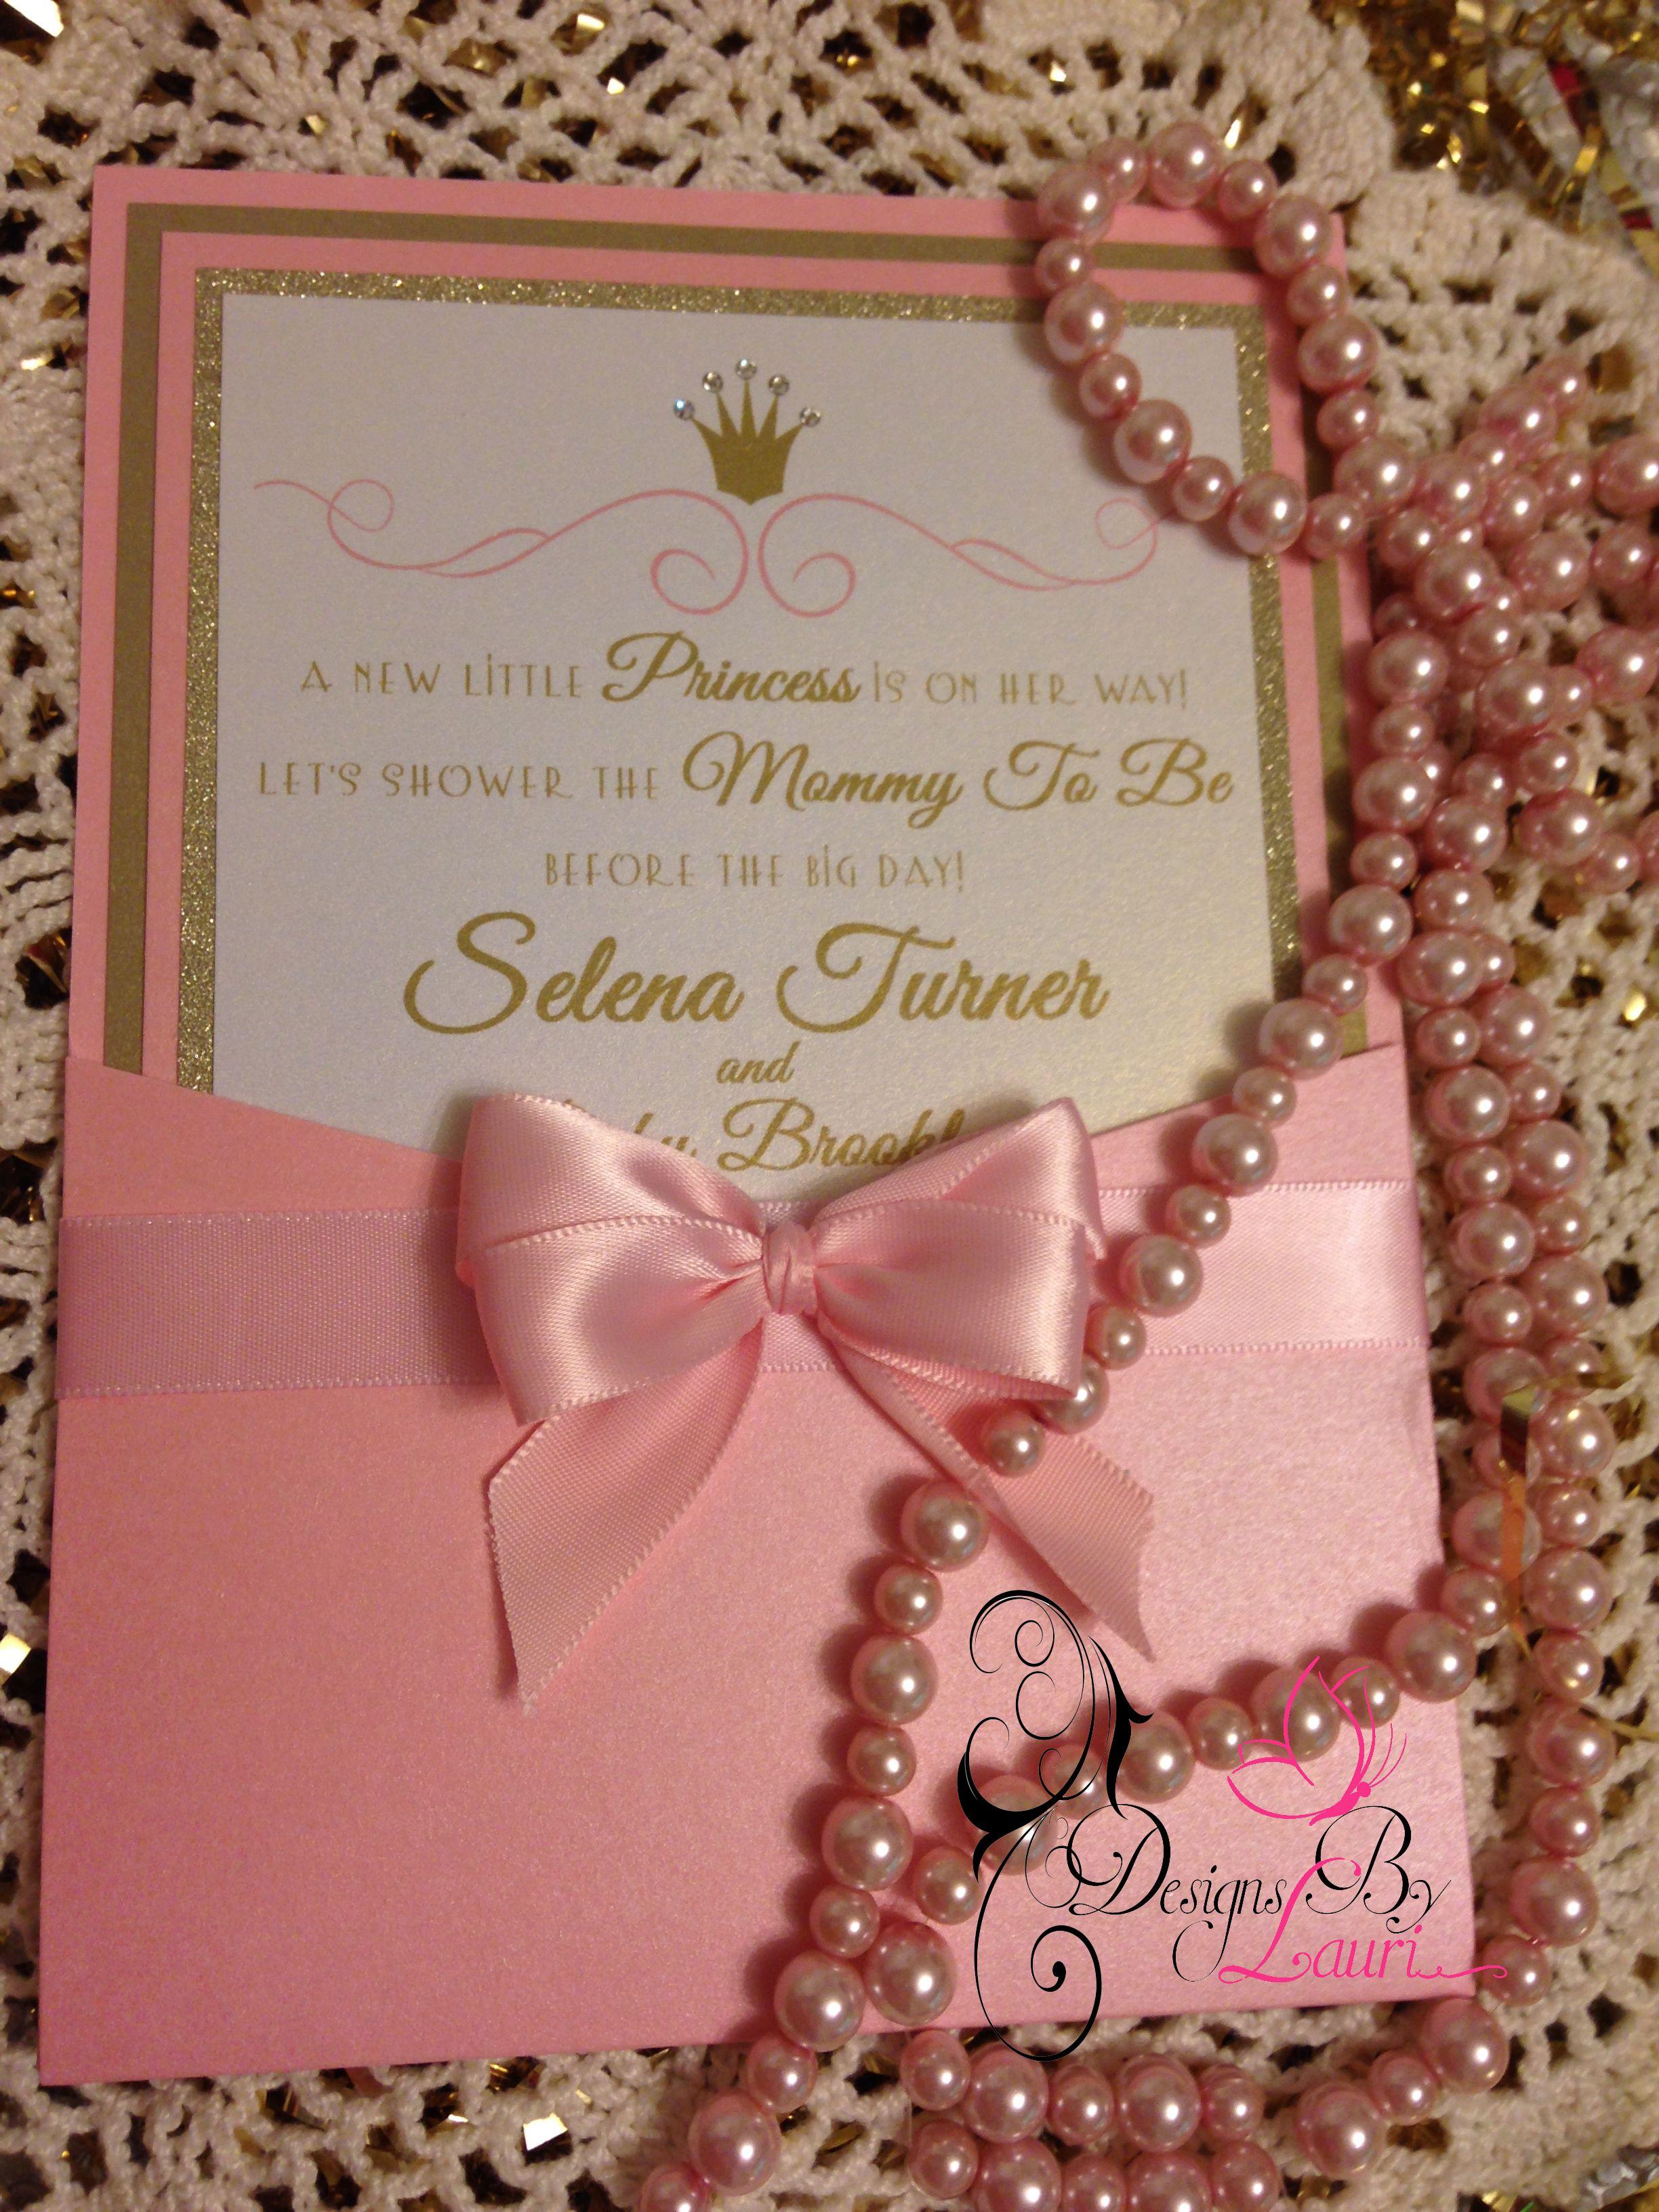 Pretty Pink Princess Invitation made by Designs By Lauri 5x7 Denali